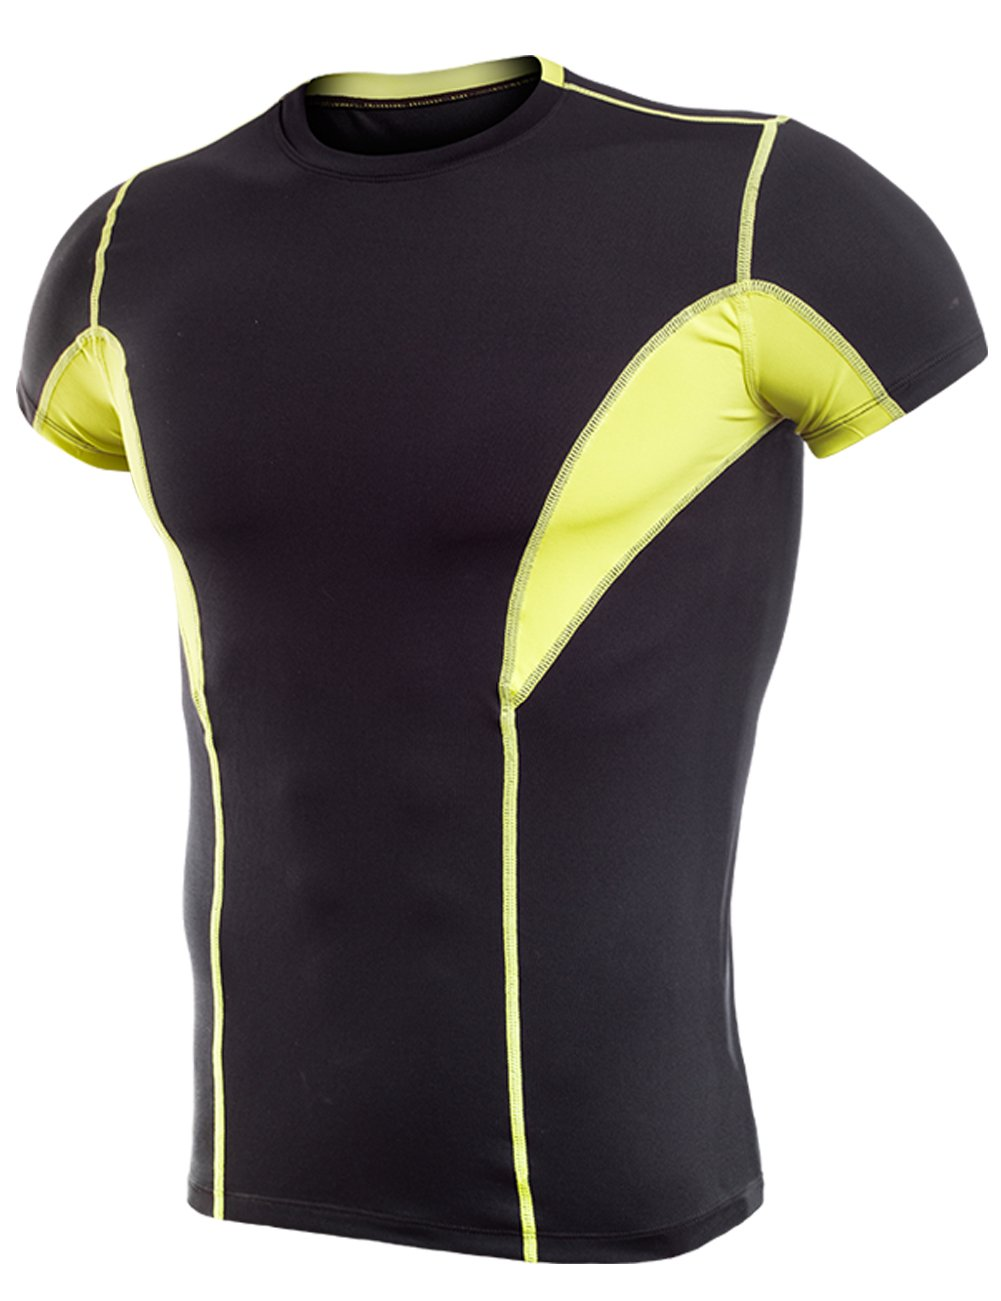 Lavento Men's Compression Shirts Cool Dry Short-Sleeve Workout T-Shirts (1 Pack-17105 Black/Yellow,Small)